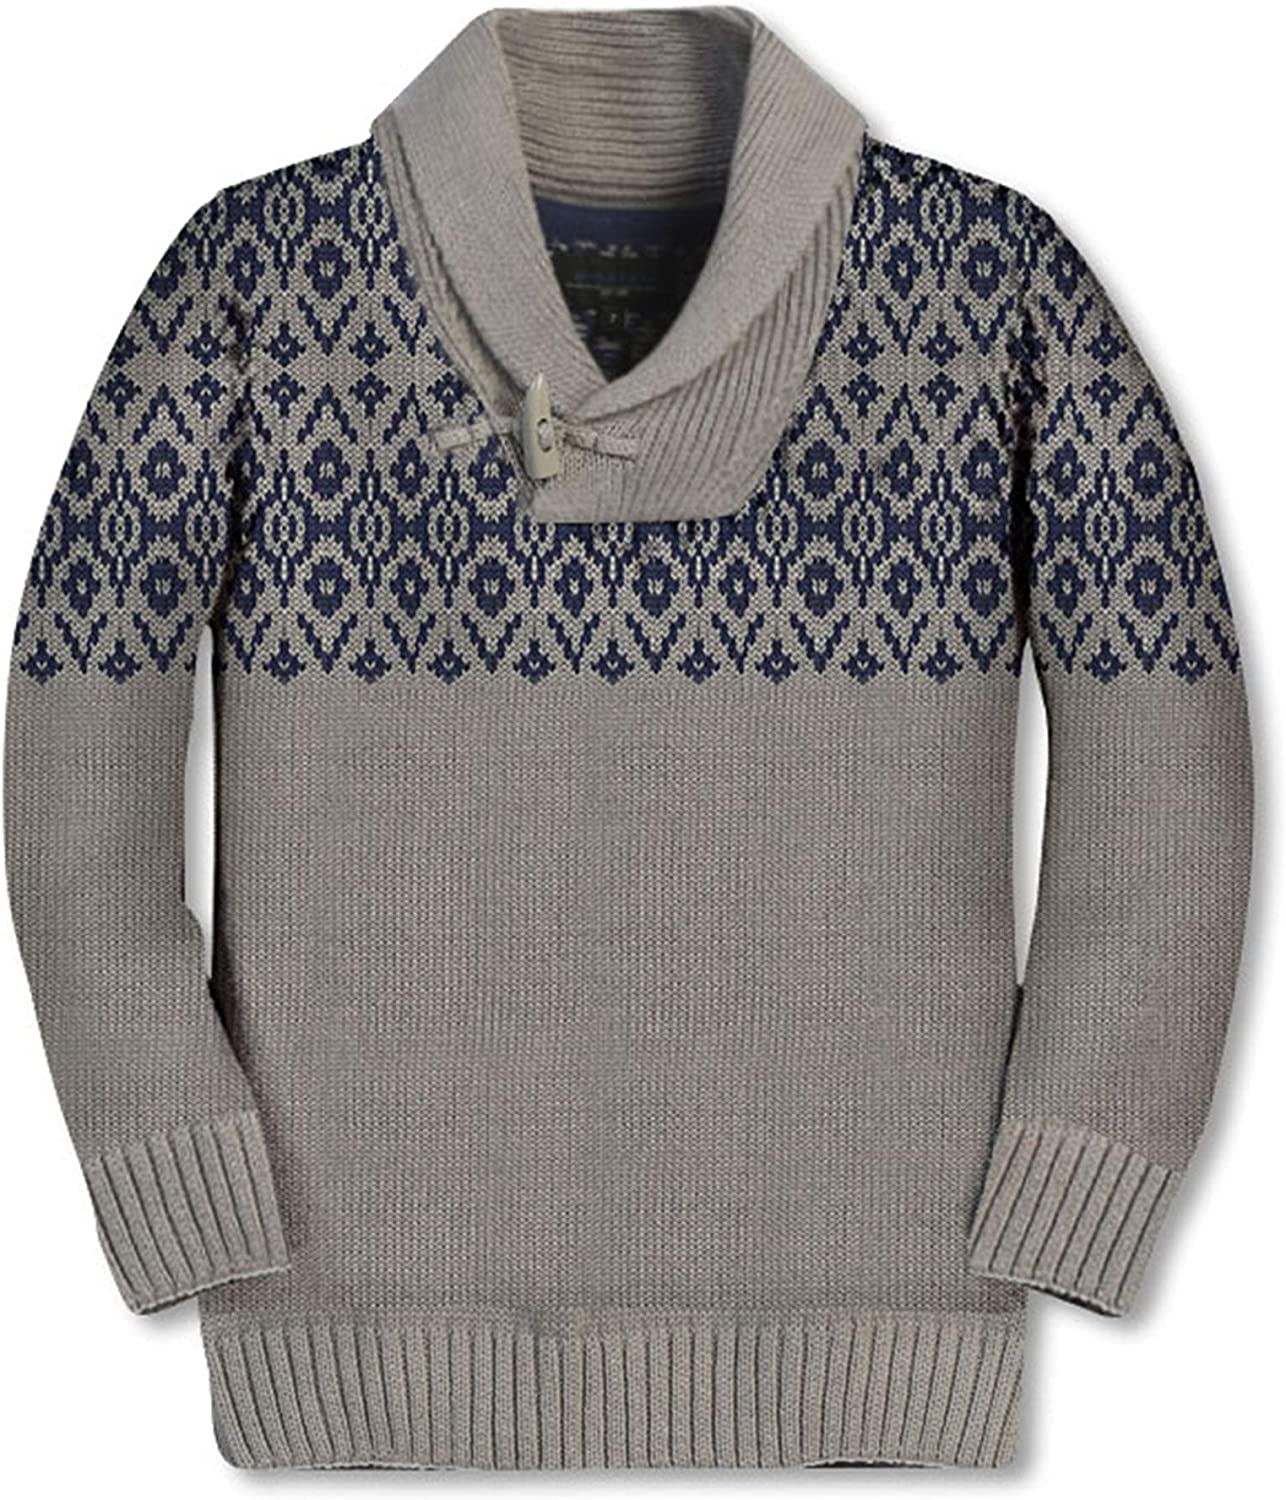 Gioberti Kids and Boys 100% Cotton Pullover Knitted Sweater with Toggle Button Closure